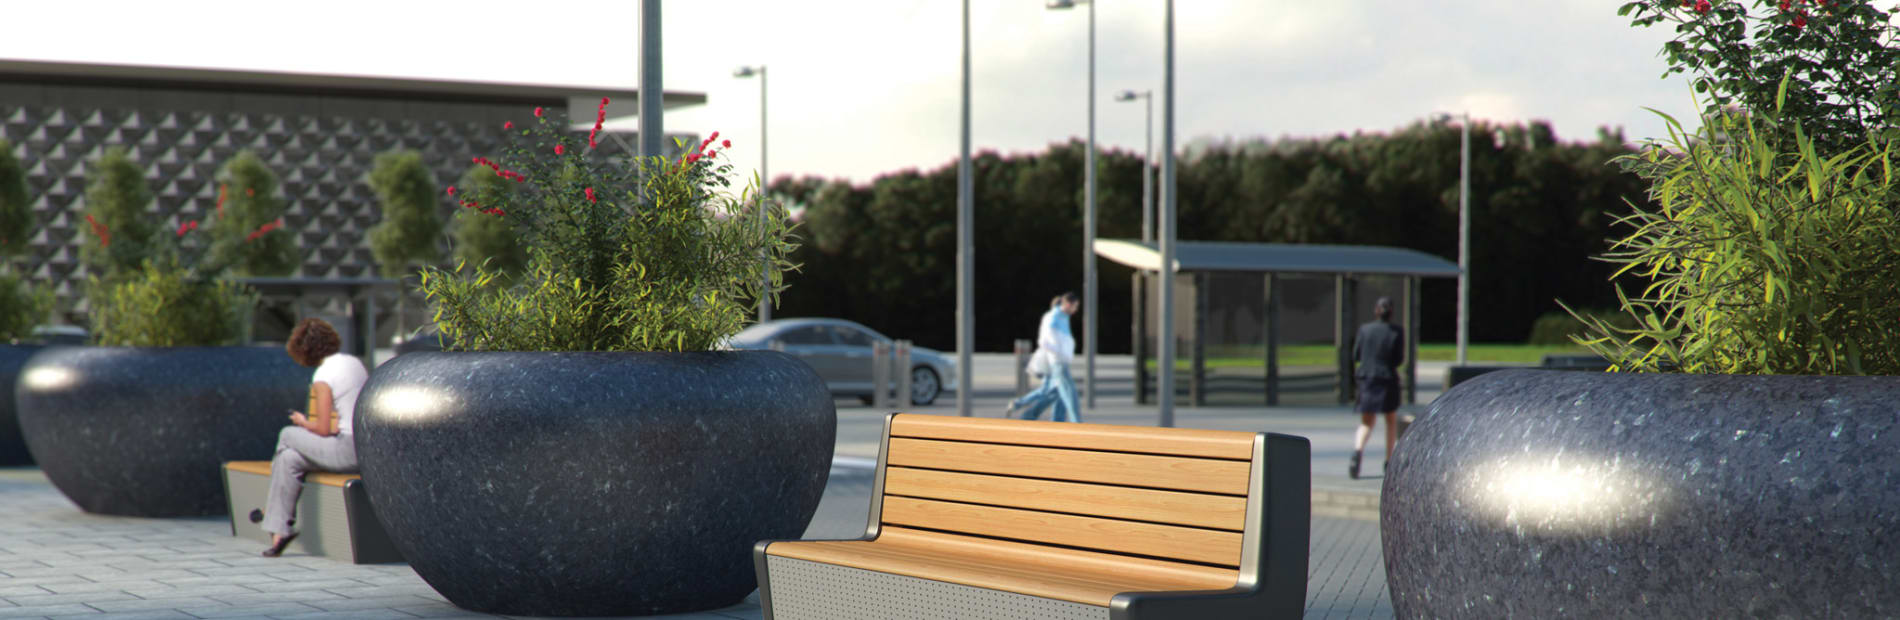 rhinoguard EOS protective seat and planters insitu